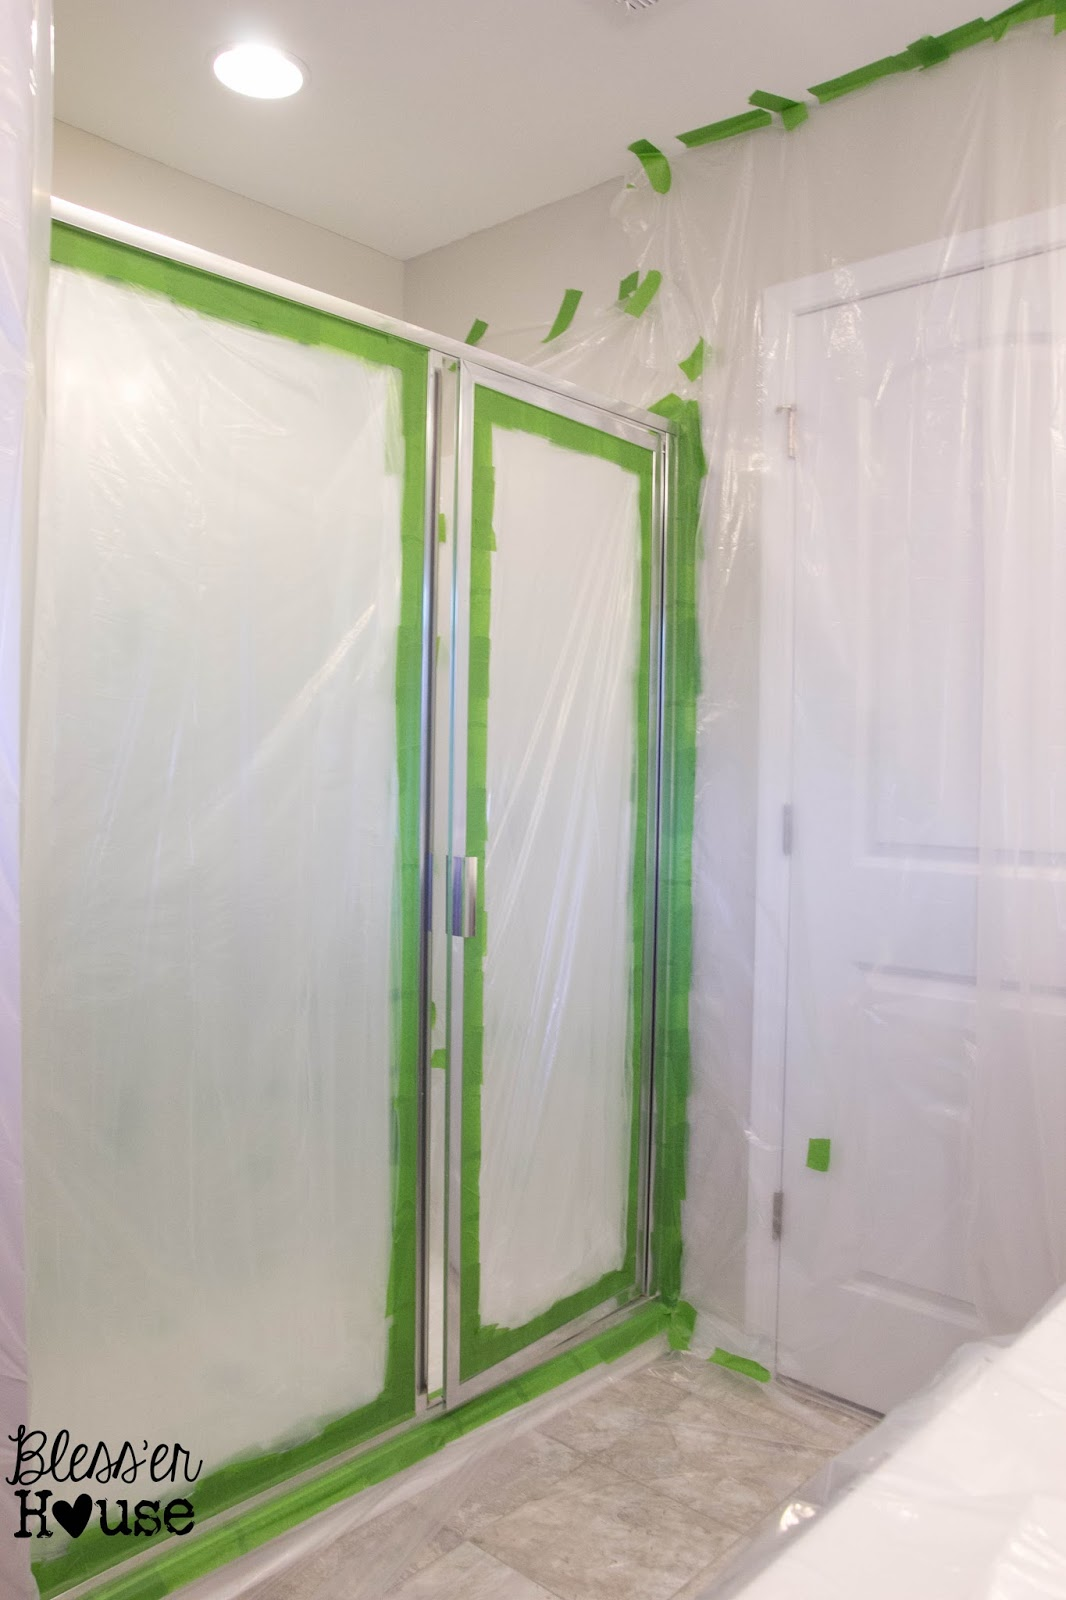 How not to paint a shower door and how to fix spray paint mistakes how not to paint a shower door and how to fix spray paint mistakes planetlyrics Choice Image